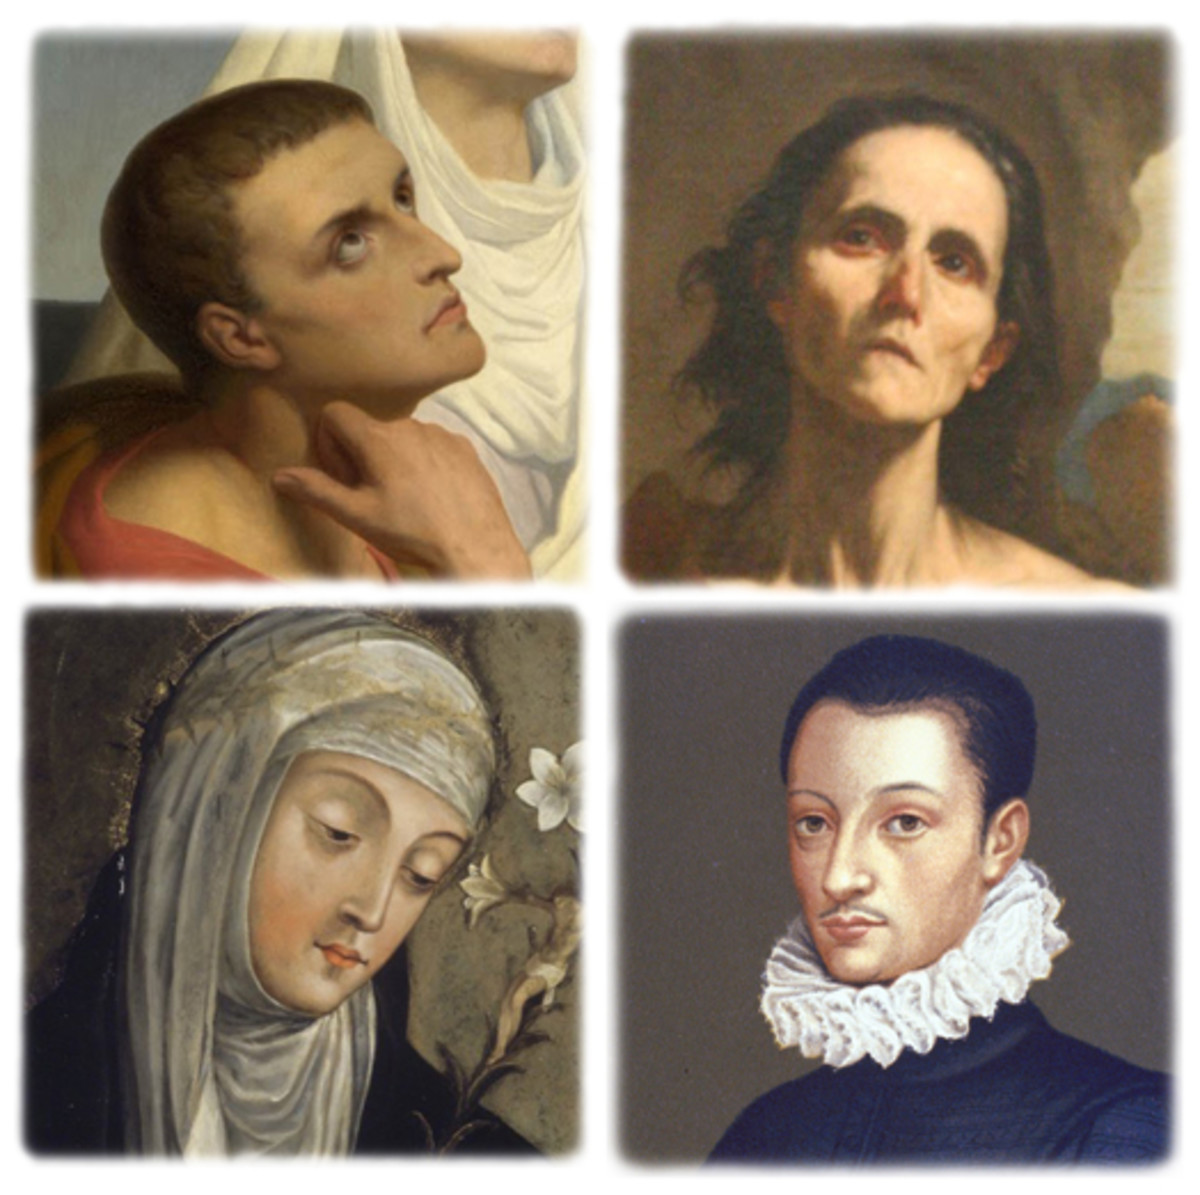 Clockwise from top left: Sts. Augustine, Mary of Egypt, Aloysius Gonzaga, Catherine of Siena